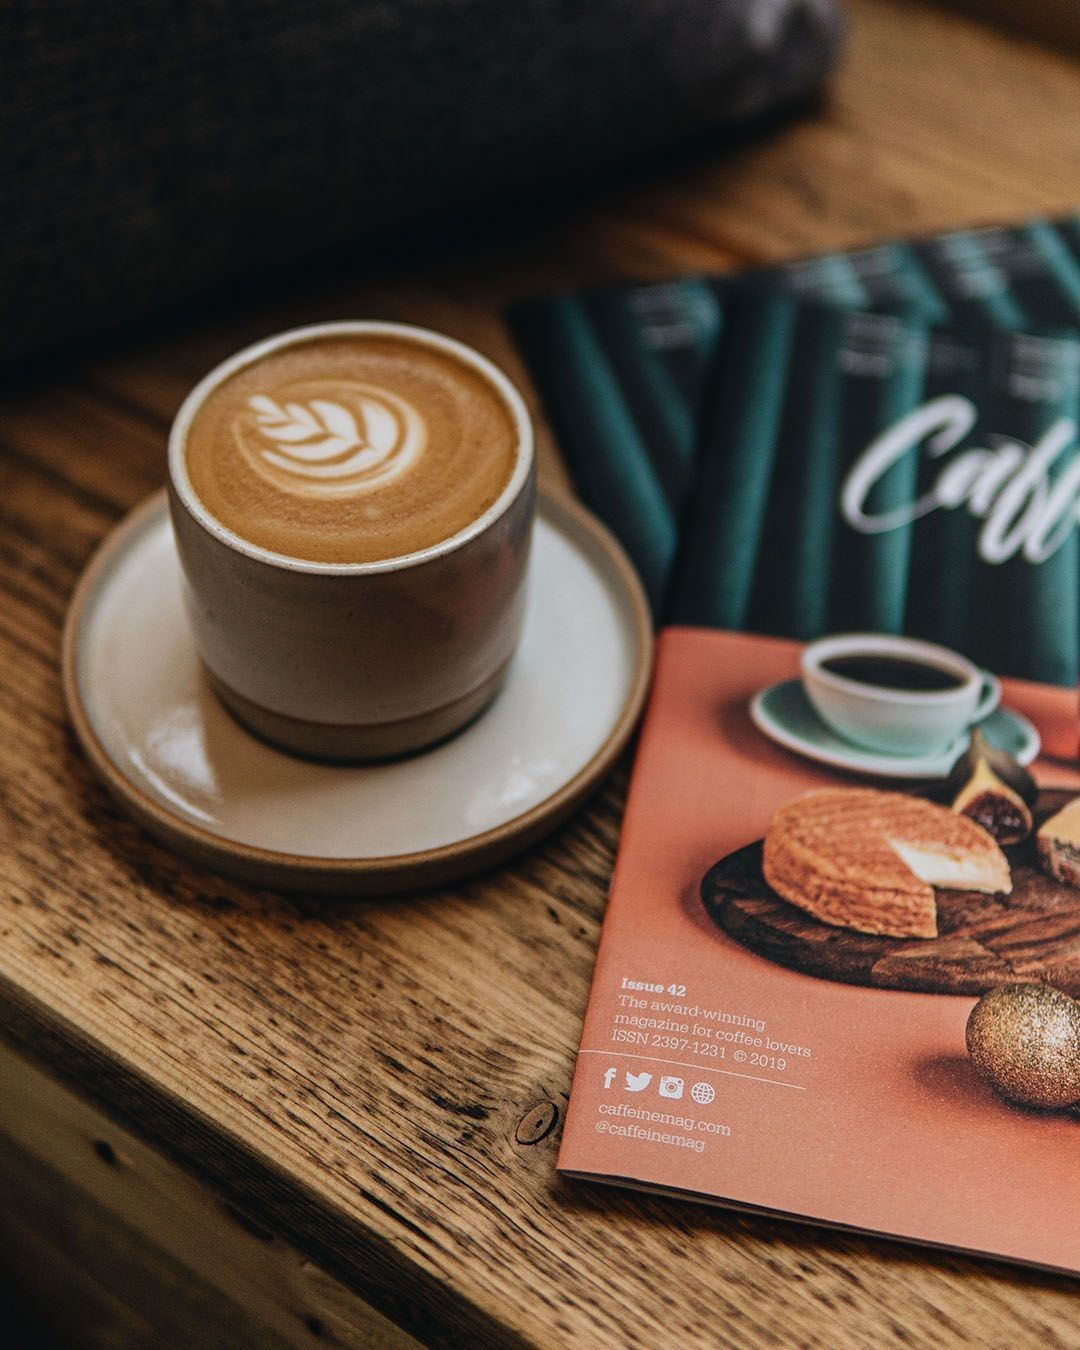 "The Coffee Lovers' Magazine on Instagram: ""Have you managed to get your hands on our winter issue? Grab yours before the next issue comes out, so you don't miss out on any content!…"" #coffeedate"